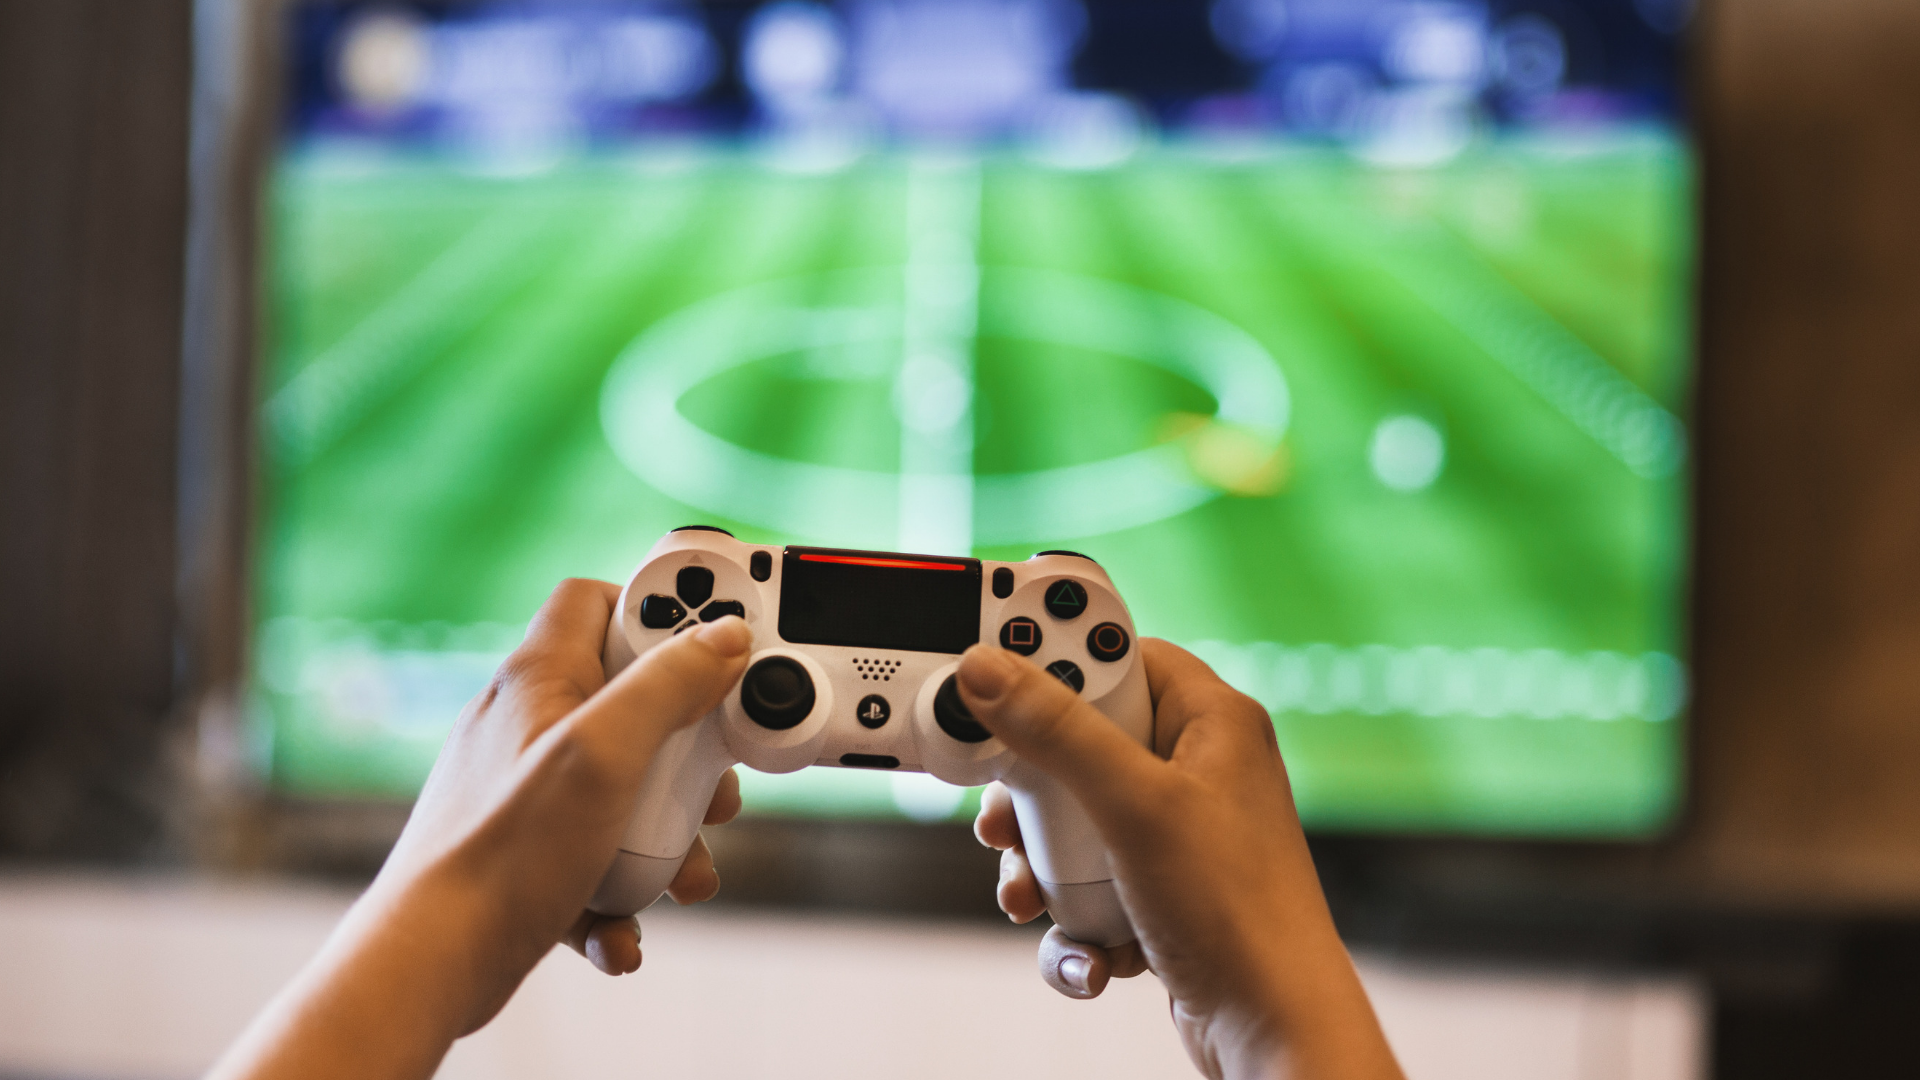 Video games can be a useful tool in combating the hand-eye coordination issues often found in autism